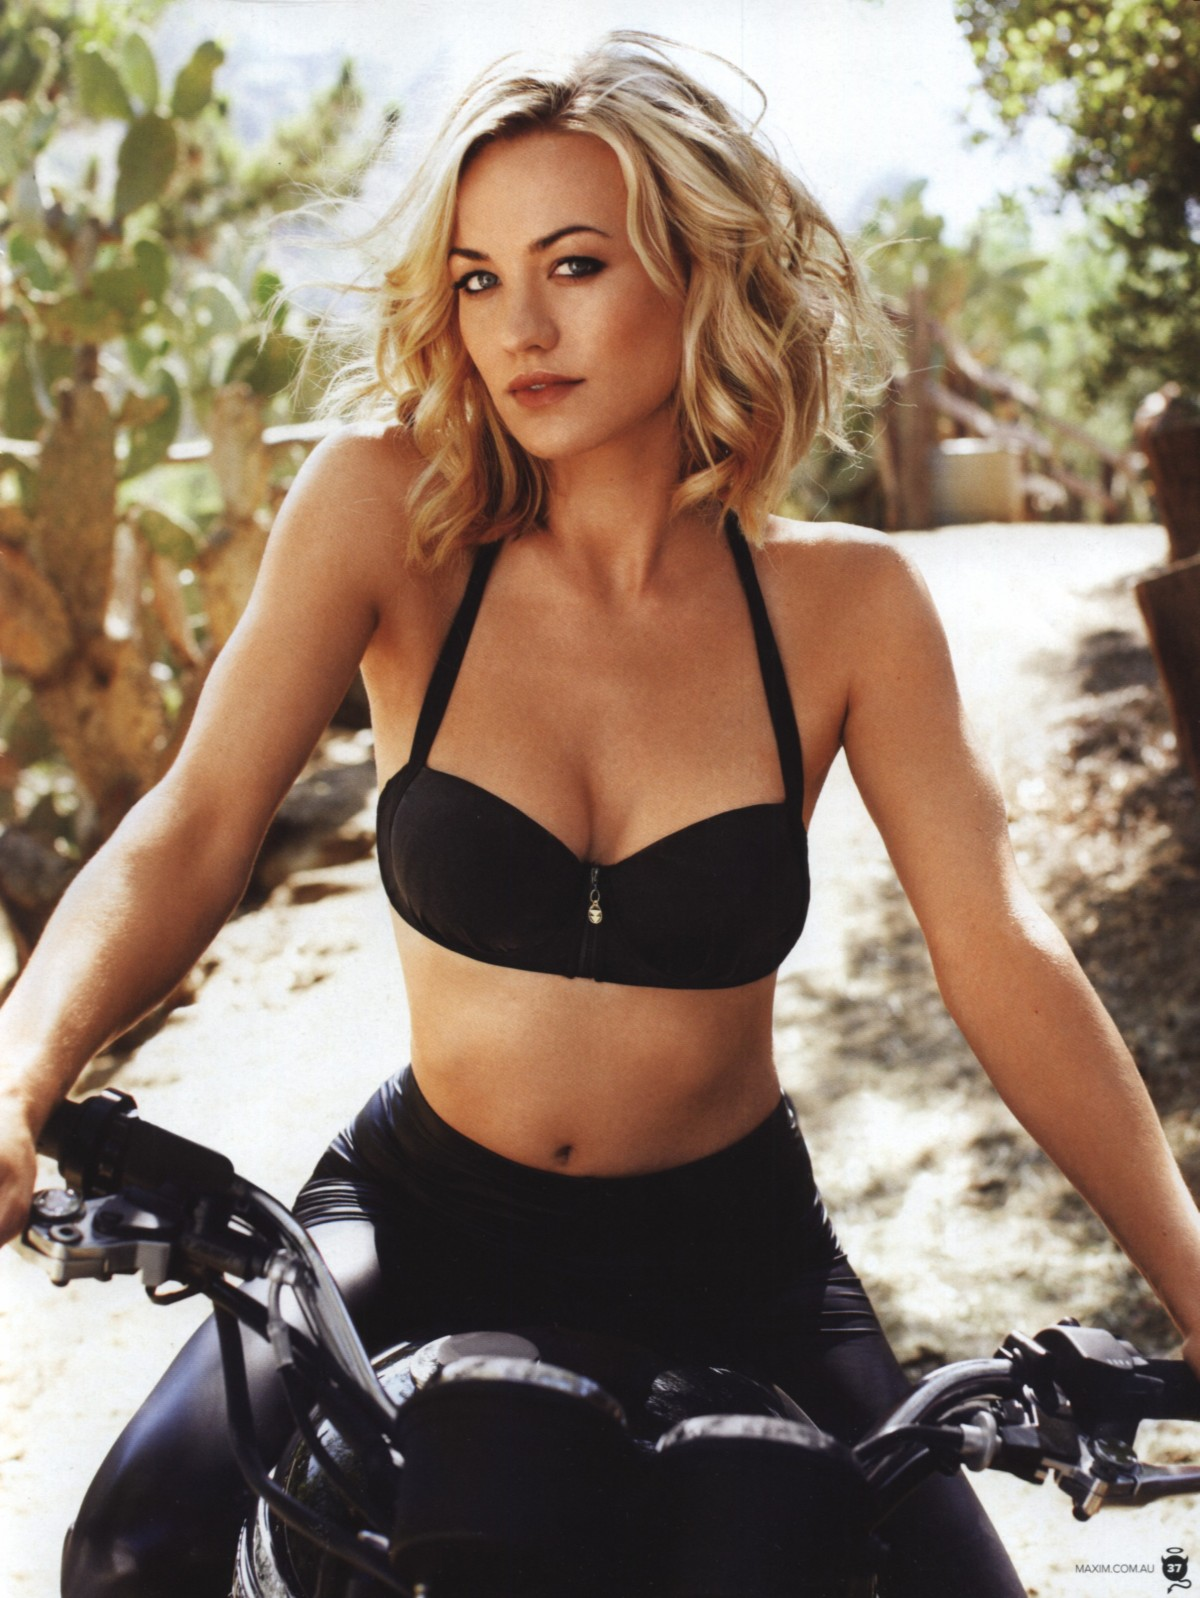 http://kdmag.files.wordpress.com/2013/02/yvonne-strahovski-knuckler-dragger-magazine-8.jpg?w=1200